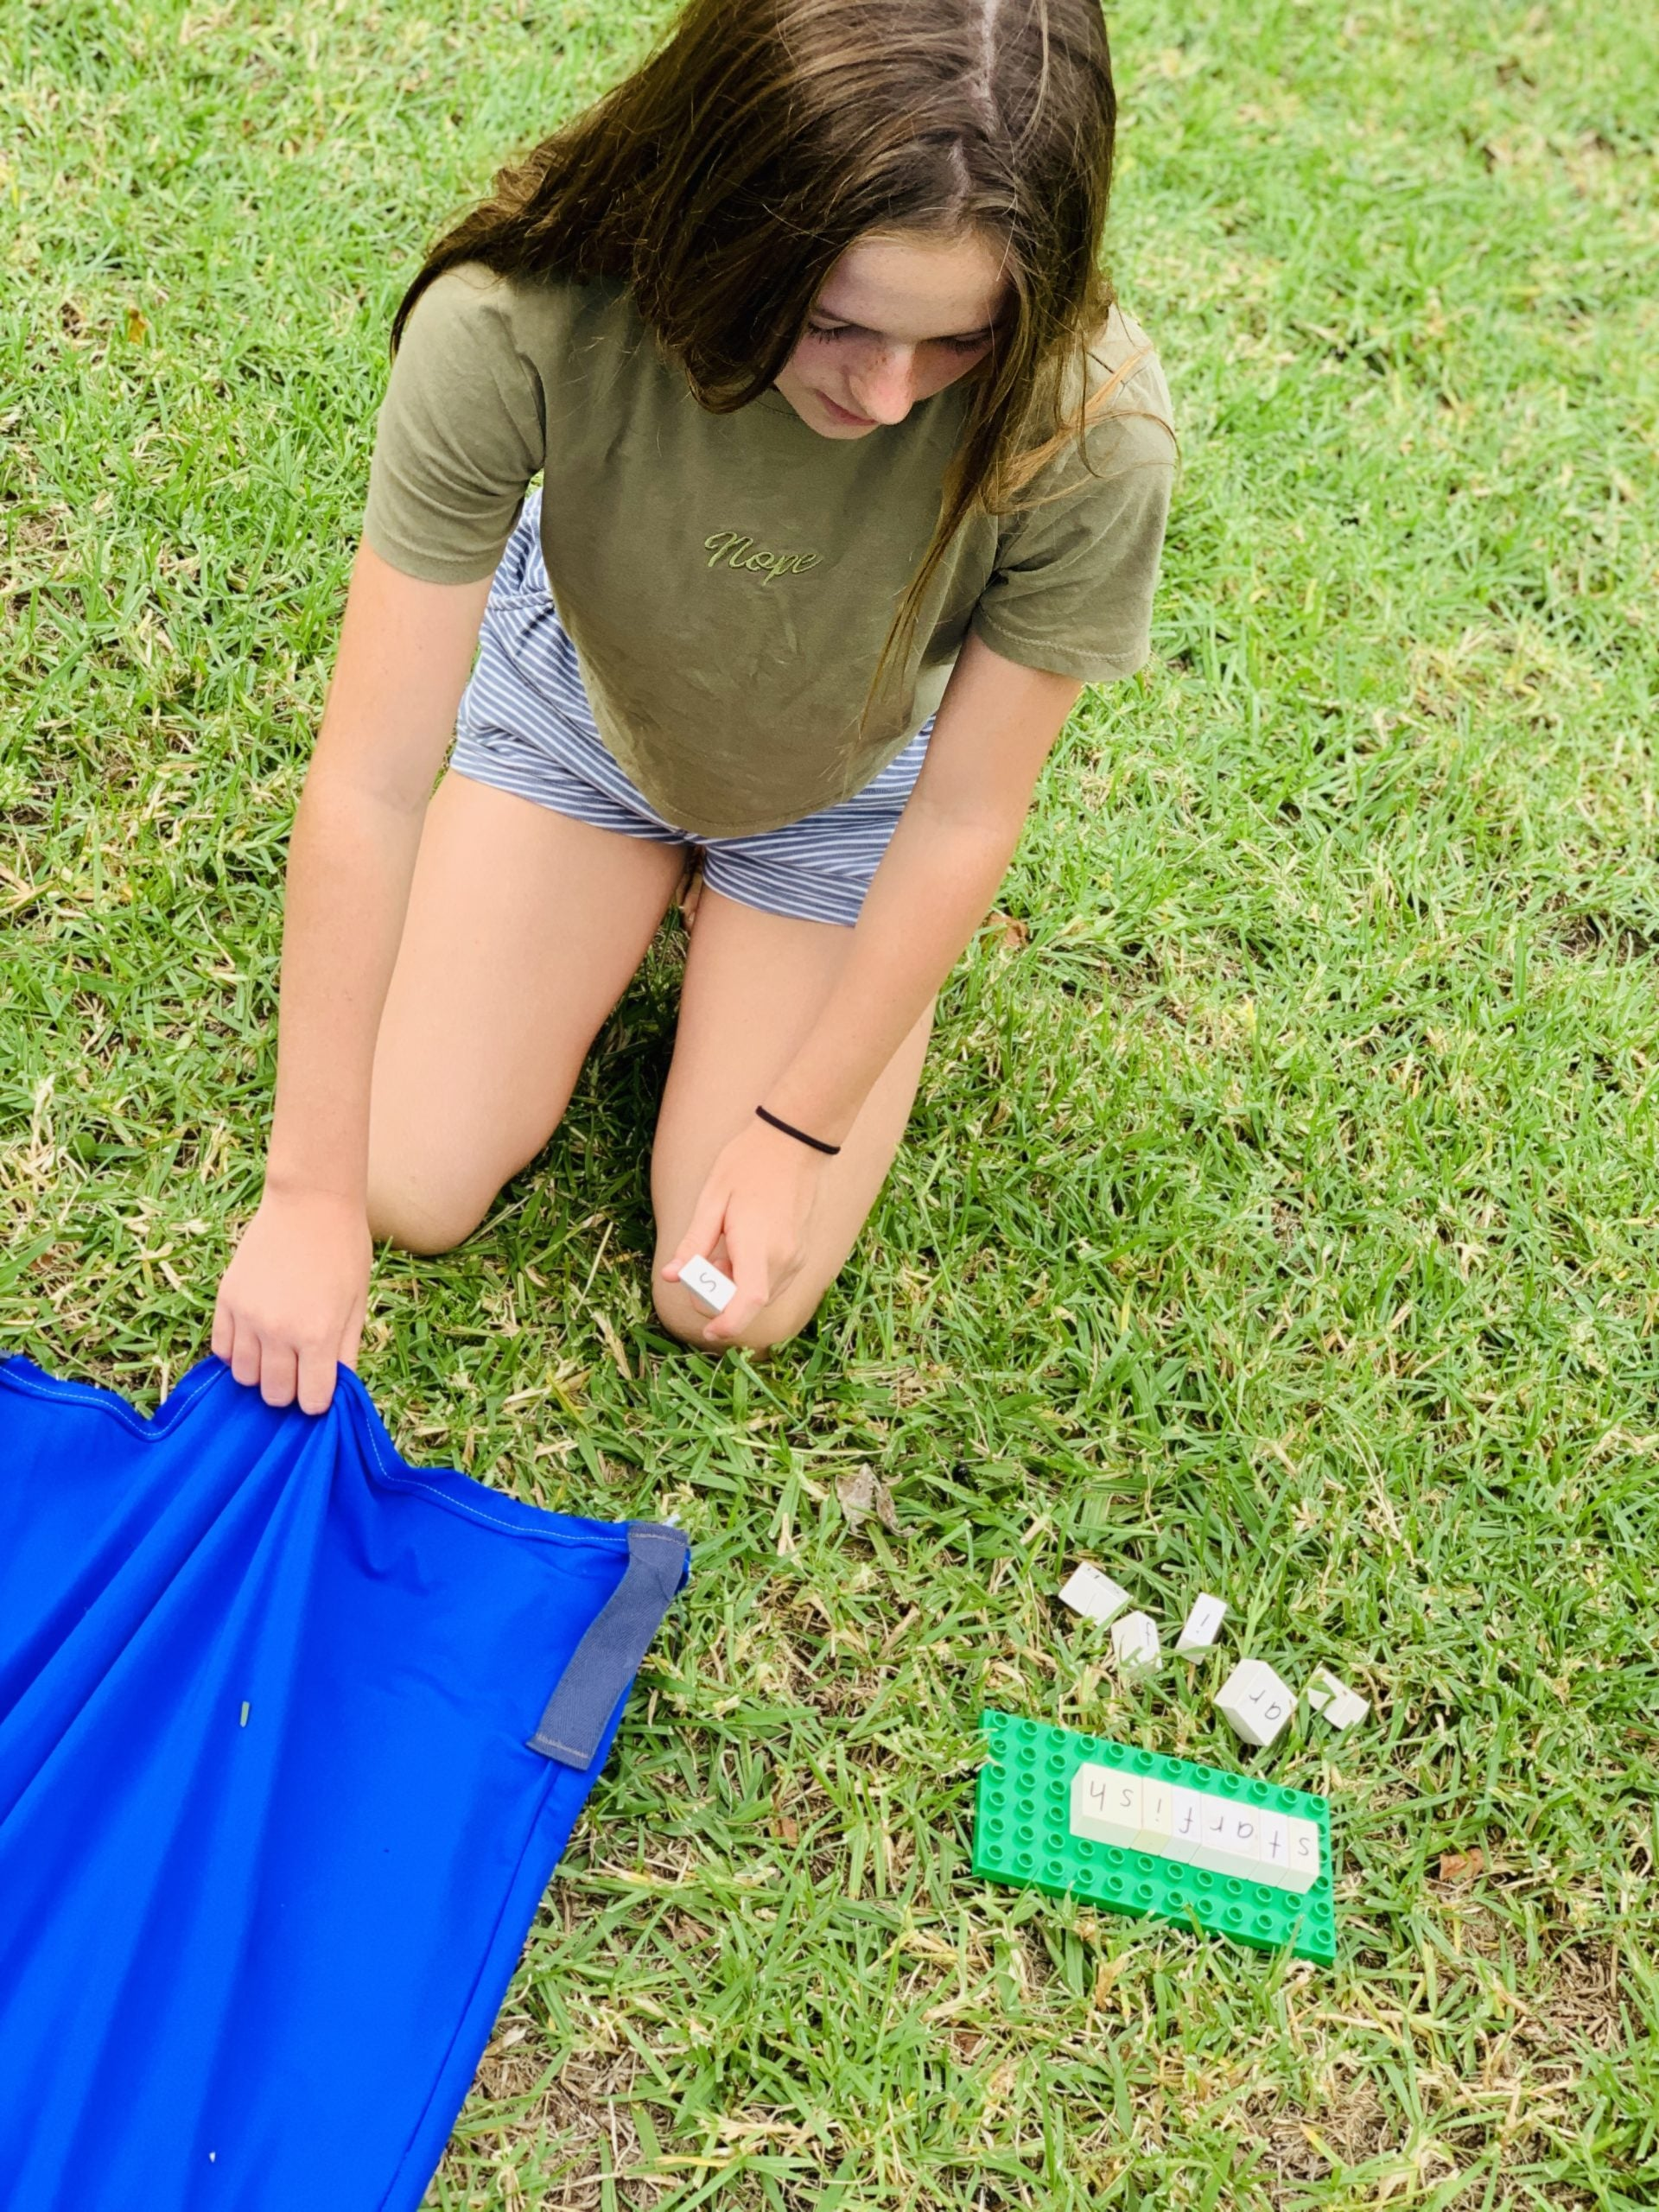 Girl kneeling down on grass with blue lycra tunnel in hand